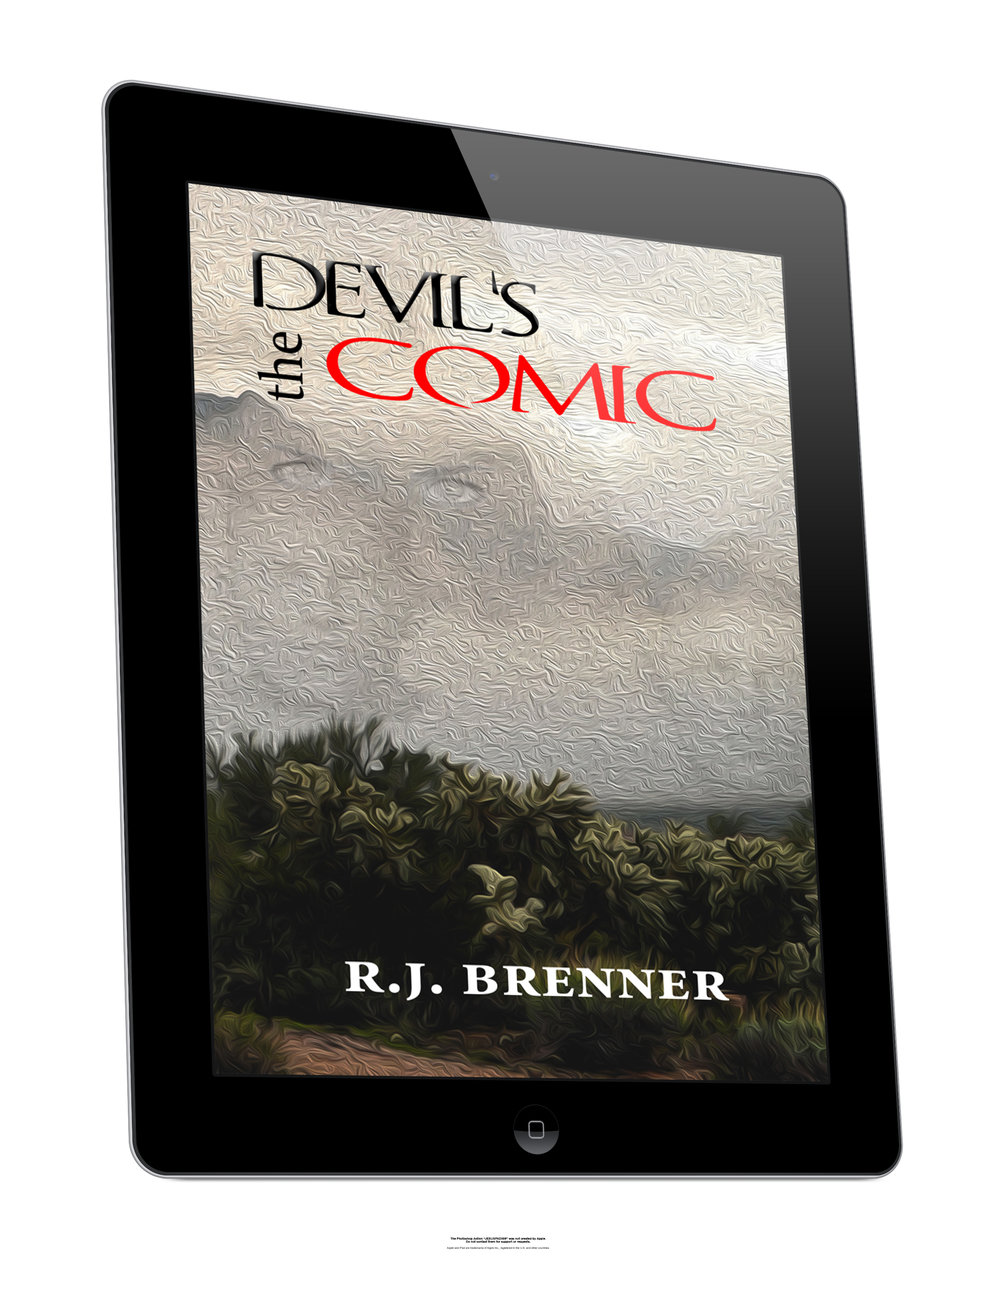 the Devils Comic - In Robert Brenner's cornerstone book of his Glenn Rice SuspenseMystery Series, the Devil's Comic, there exists a fine line betweenreality and illusion—a line many fail to see. So, when Glenn Riceanswers a call to explore something he doesn't understand, the lifehe knew slips from his fingers as he descends into a mental crevasseso deep, surfacing isn't guaranteed. Still, he knows only he candiscover the answers to questions he hears whispered on the wind.Stepping from the warmth of his cabin onto the makeshift deck, afrigid wind caught in his lungs—an ill wind, he called it, but only tothose who knew him as much more than Flagstaff's colorful old timer.Yes, he was full of tales anyone would love to tell, but it was the stuffburied in his soul making the man. Few were privileged to hear them,although all would have loved to deliver his wood for an hour or two.He stood facing the Superstitions, knowing with the wind came changehe felt weeks prior. Then, he thought of Biminak.Surely, he felt it, too.